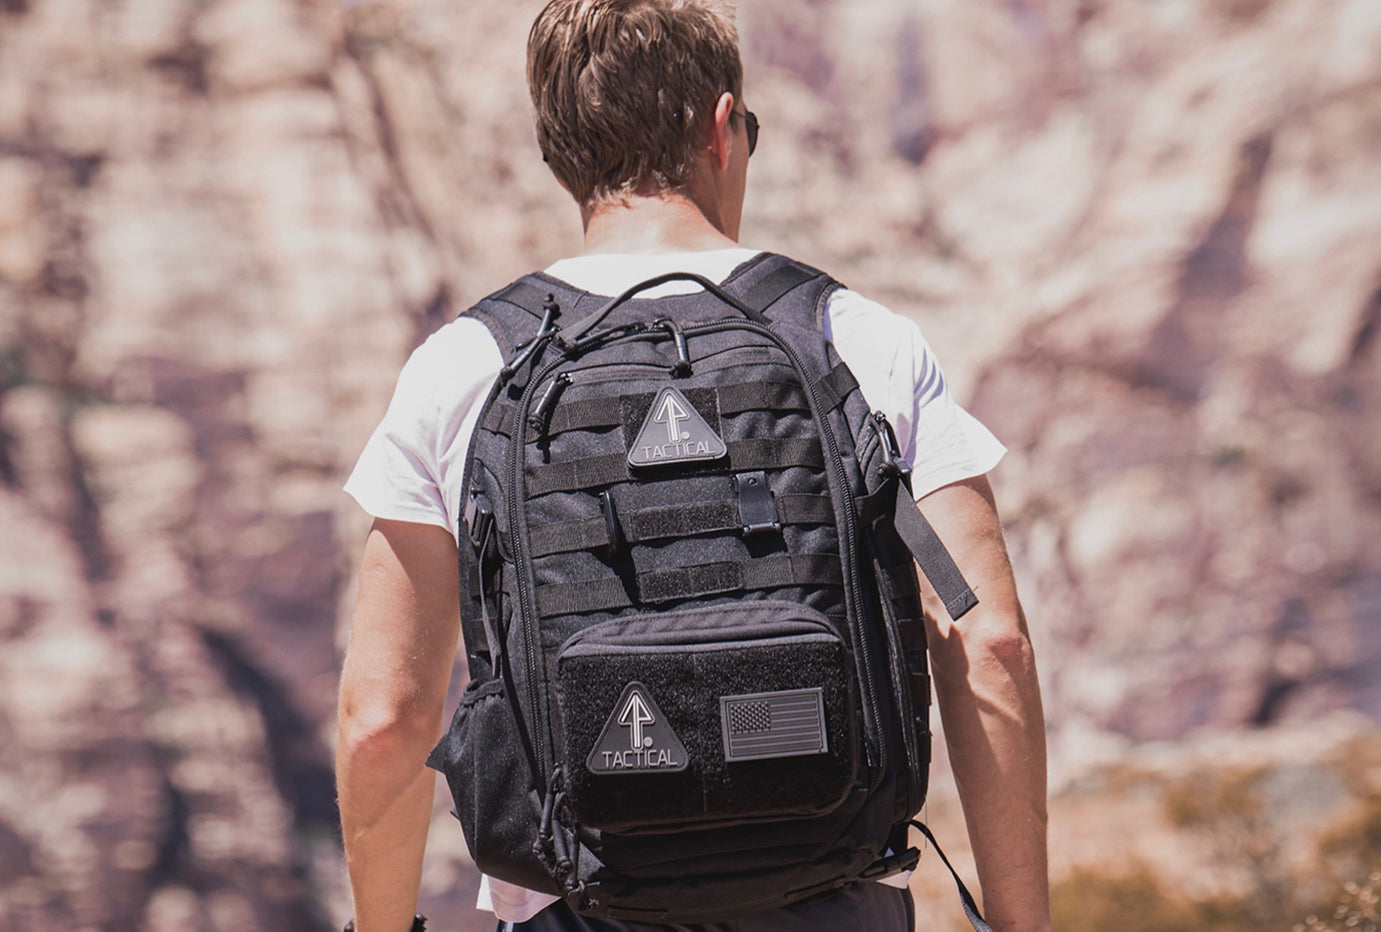 A man wears his EDC 14er Tactical Backpack while adventuring in the outdoors